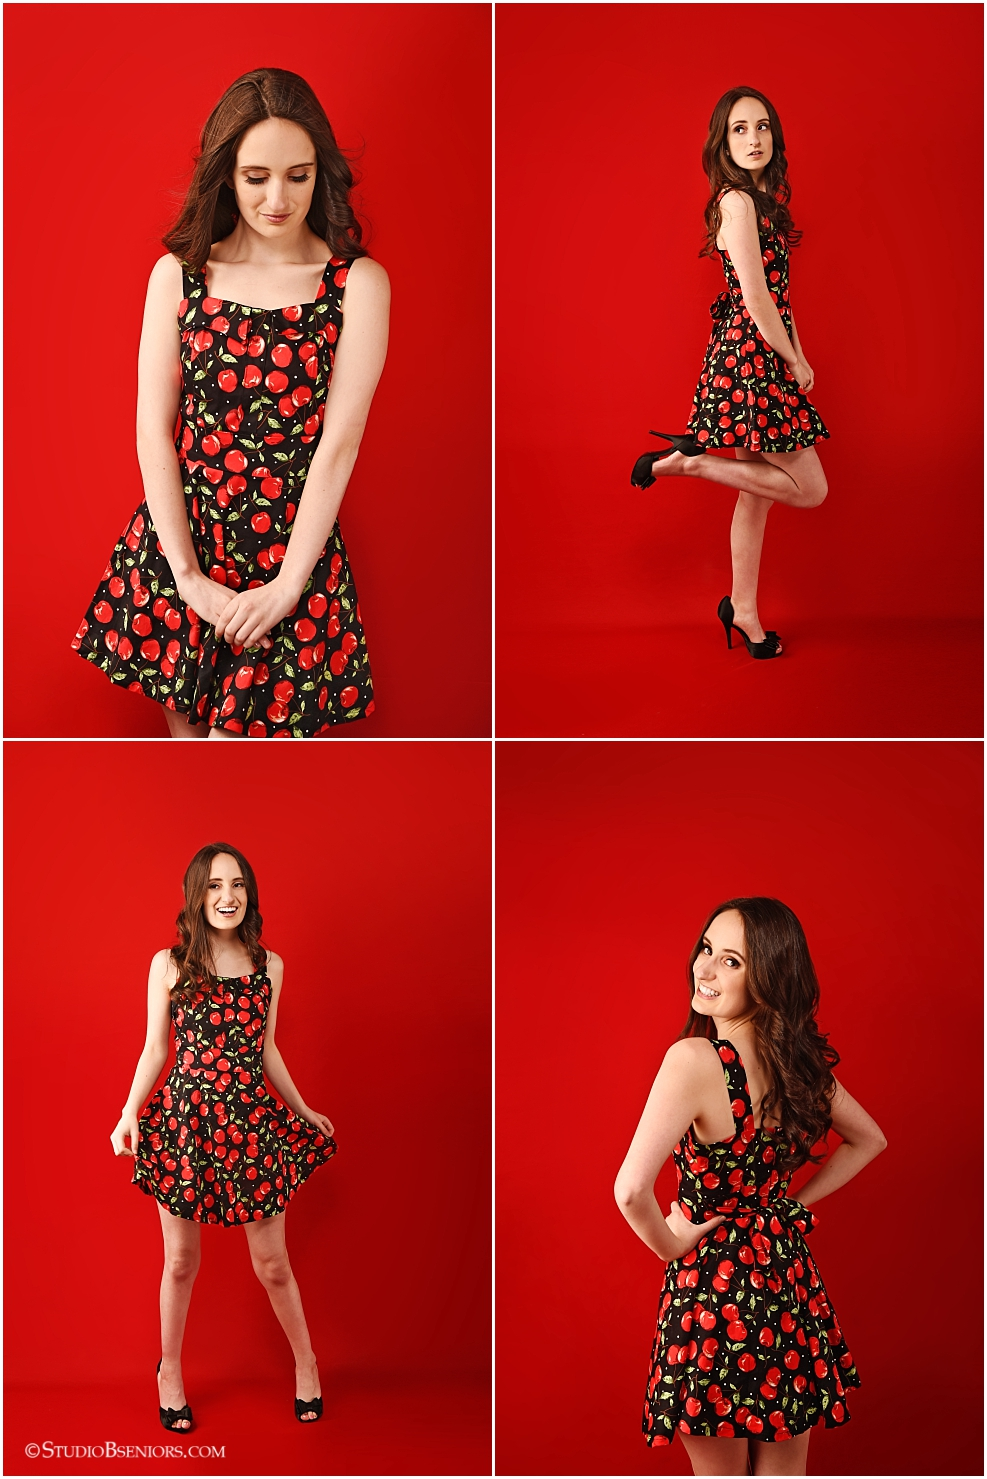 Super cute high school girl in vintage cherry dress